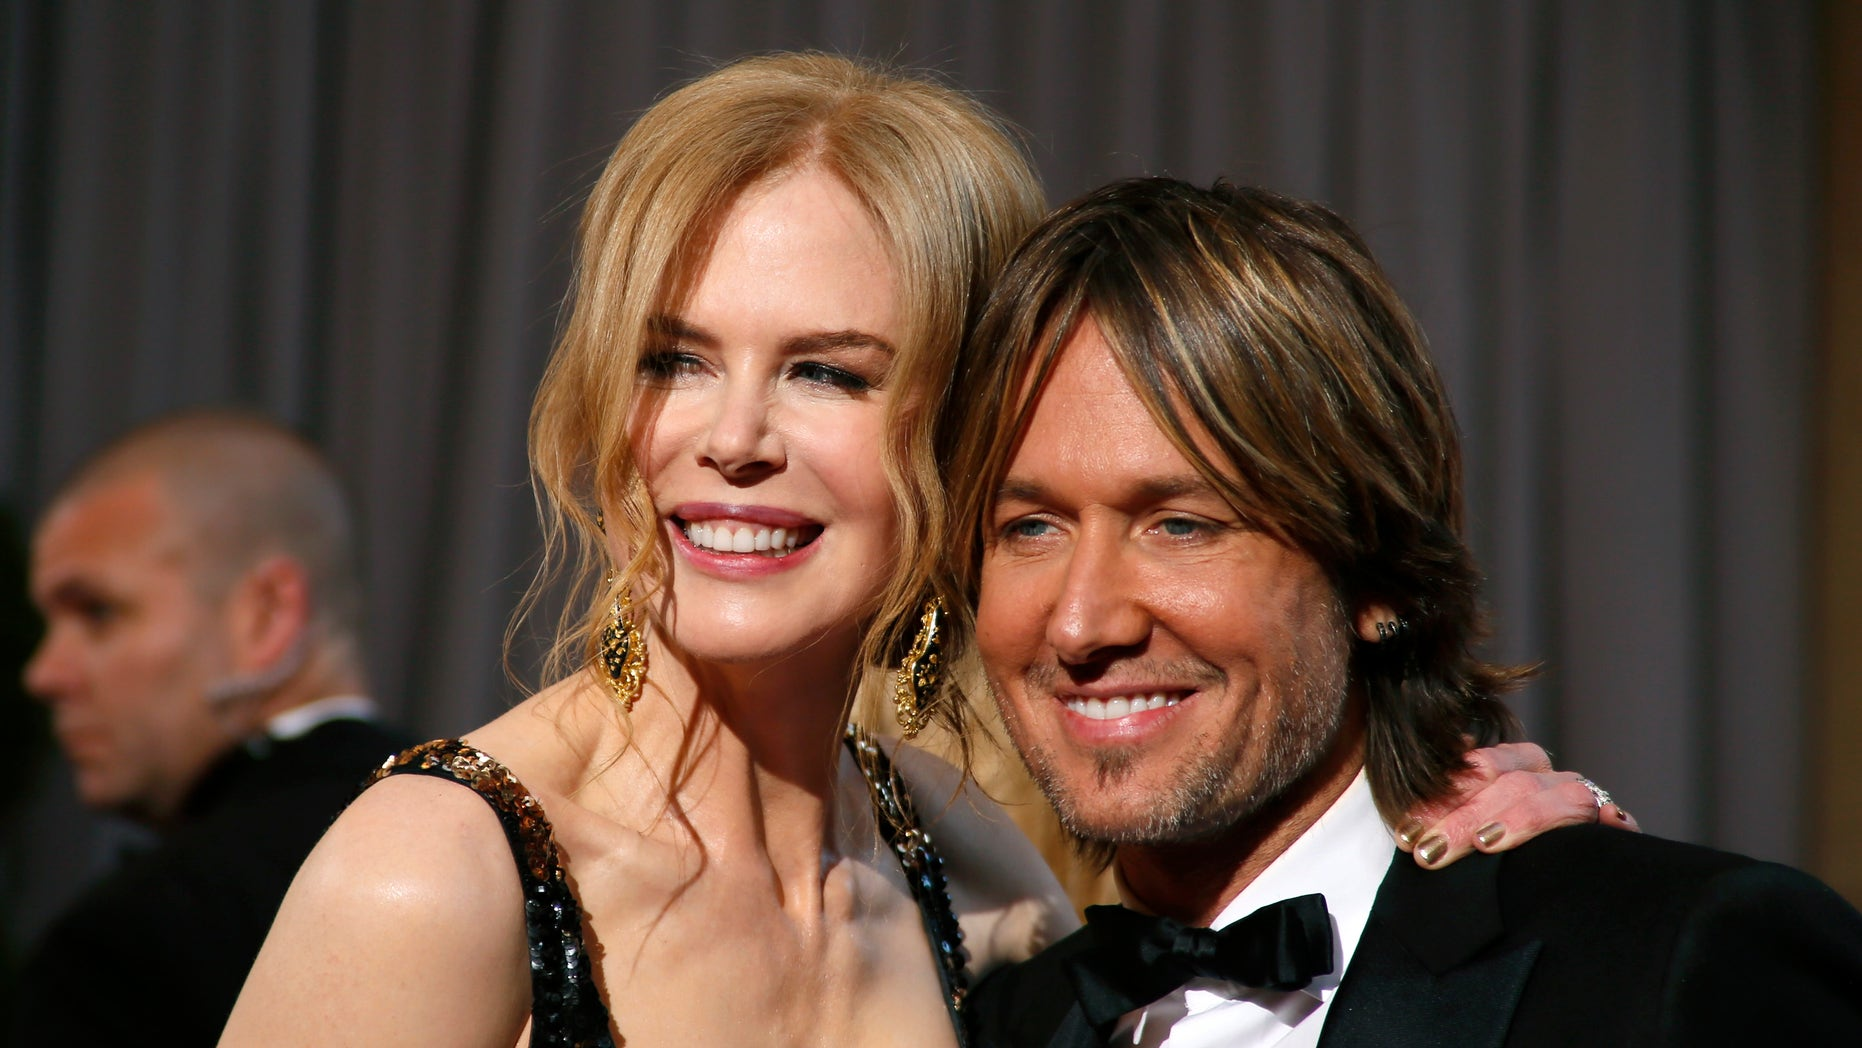 Oscars presenter Nicole Kidman poses with her husband musician Keith Urban as they arrive at the 85th Academy Awards in Hollywood, California February 24, 2013.